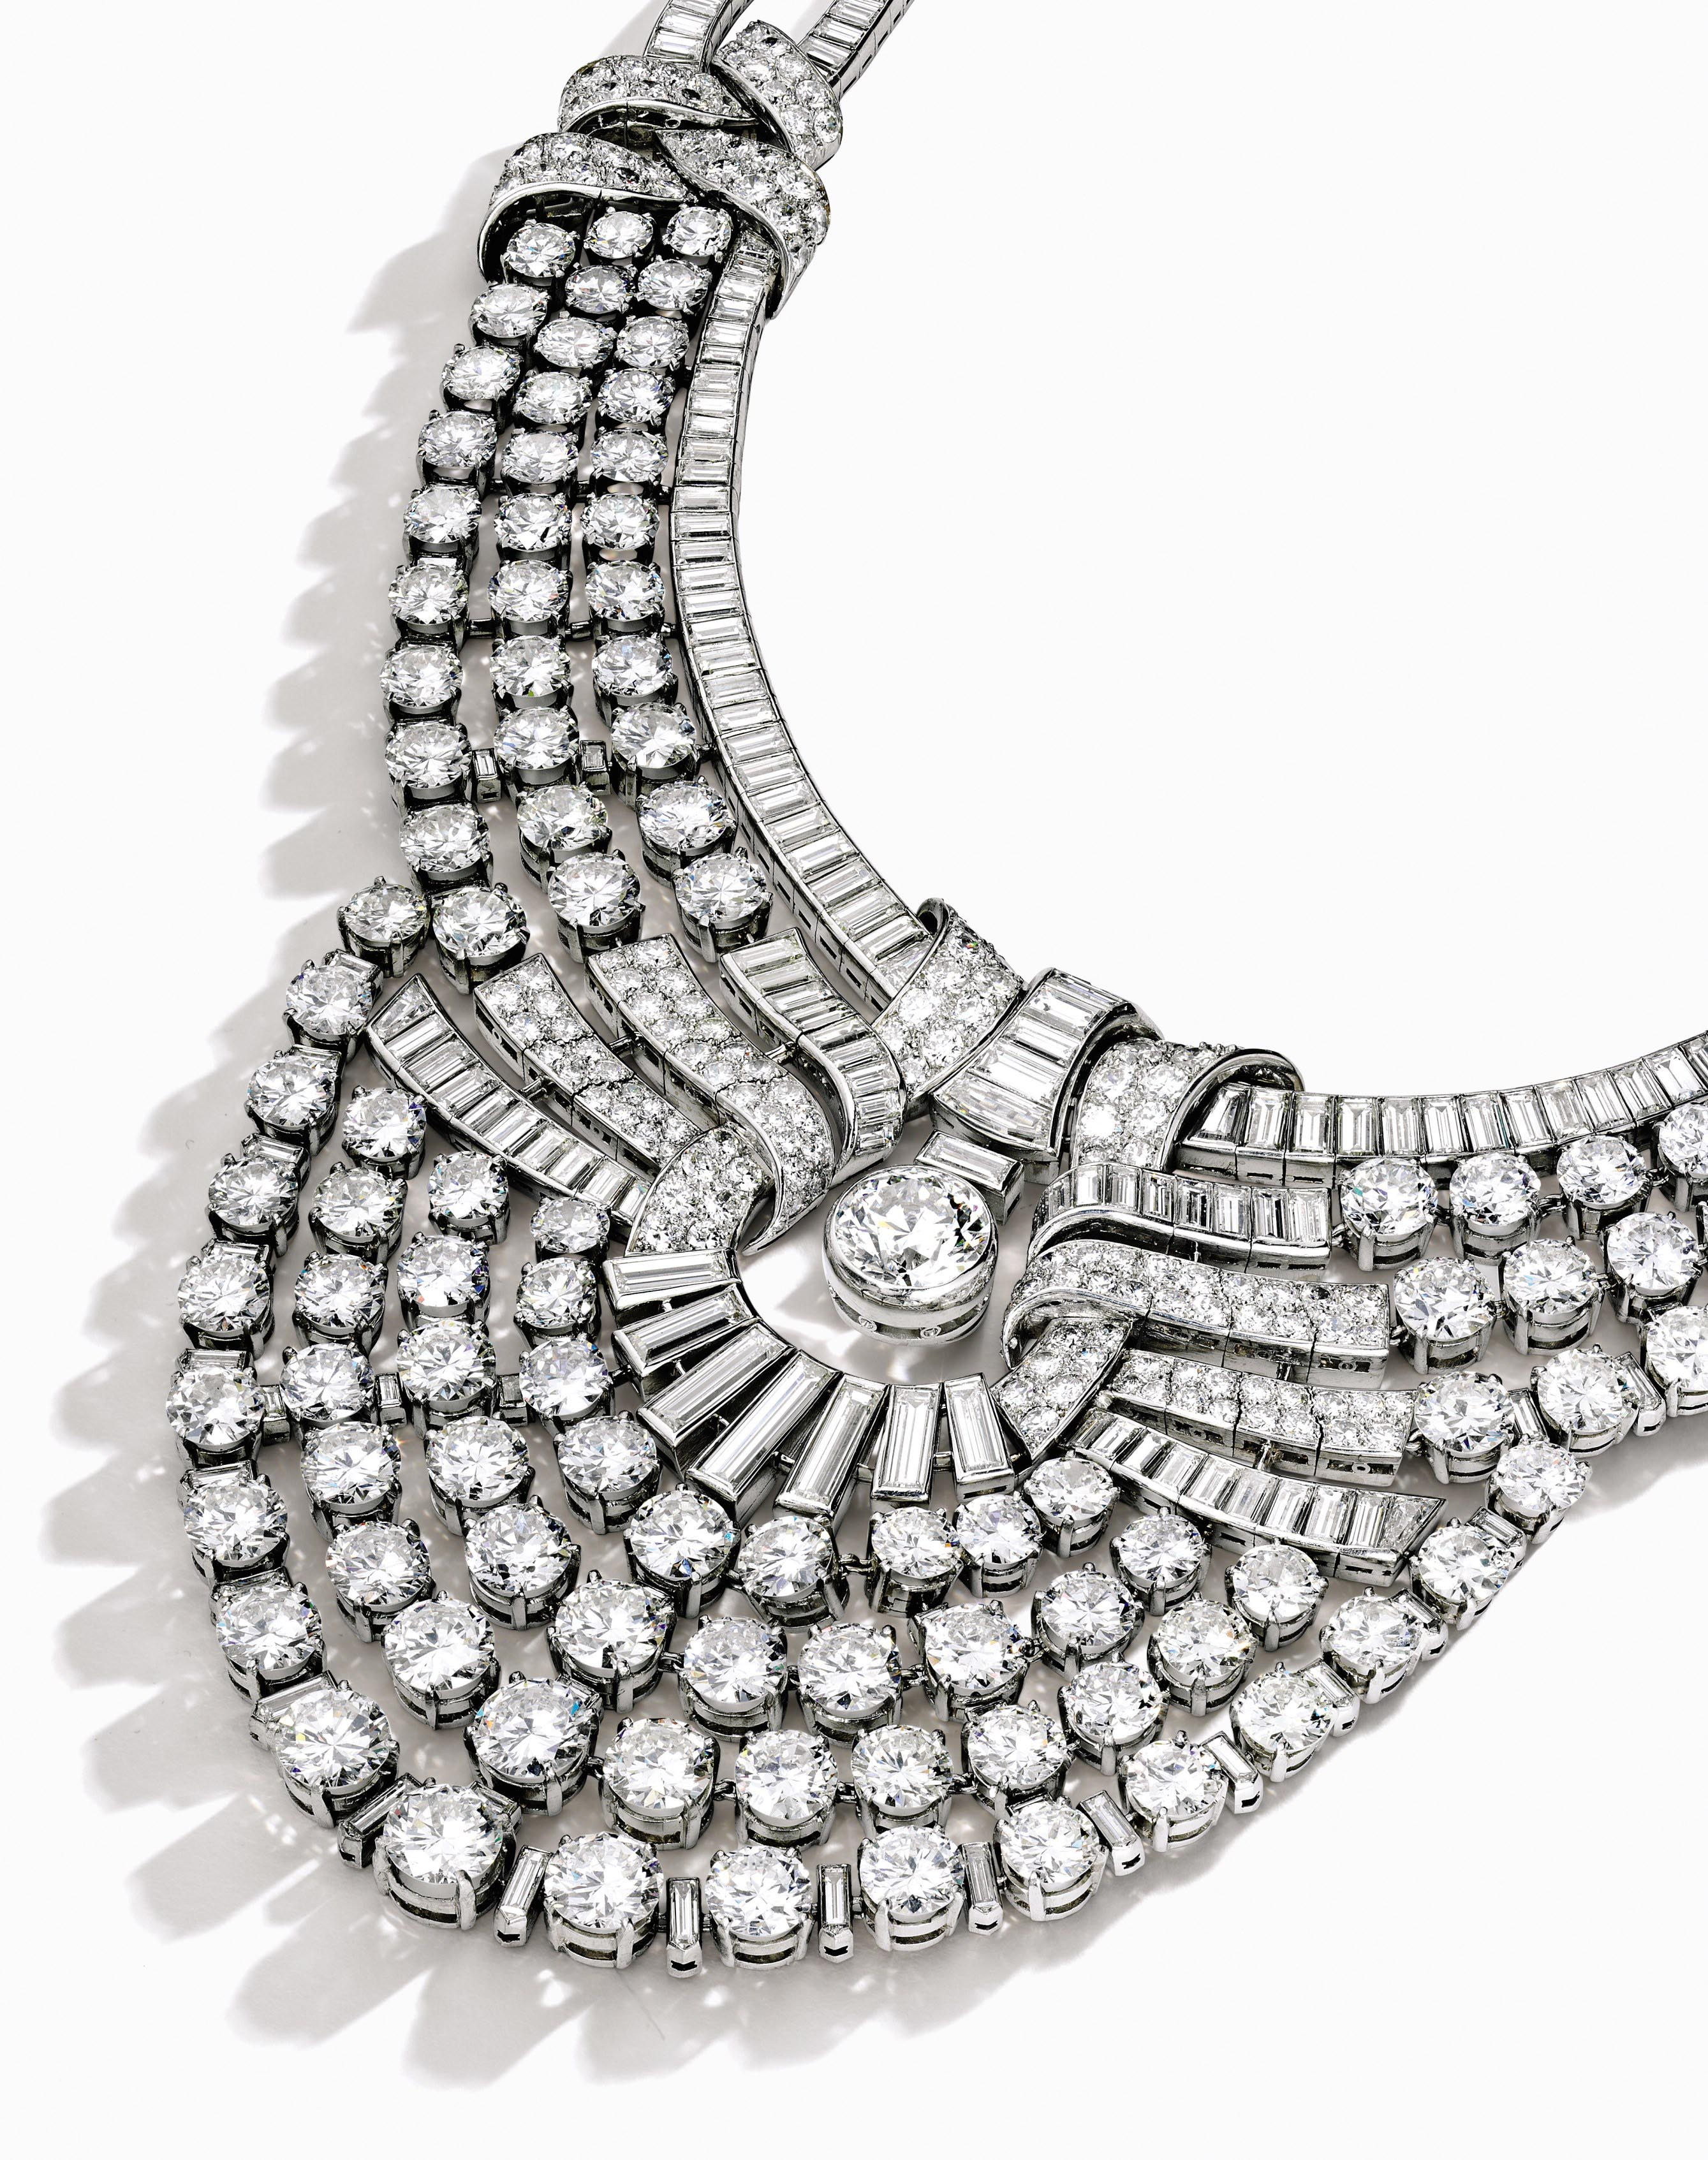 Magnificent and Historic Platinum and Diamond Necklace, Van Cleef & Arpels (estimate $3.6/4.6 million), created by the Parisian jeweler in 1939 for Queen Nazli of Egypt. Set with 217 carats of diamonds in a sunburst motif, the sensational bib-style necklace has been called 'a perfect piece of jewelry' by Vincent Meylan, author of Van Cleef & Arpels: Treasures and Legends.